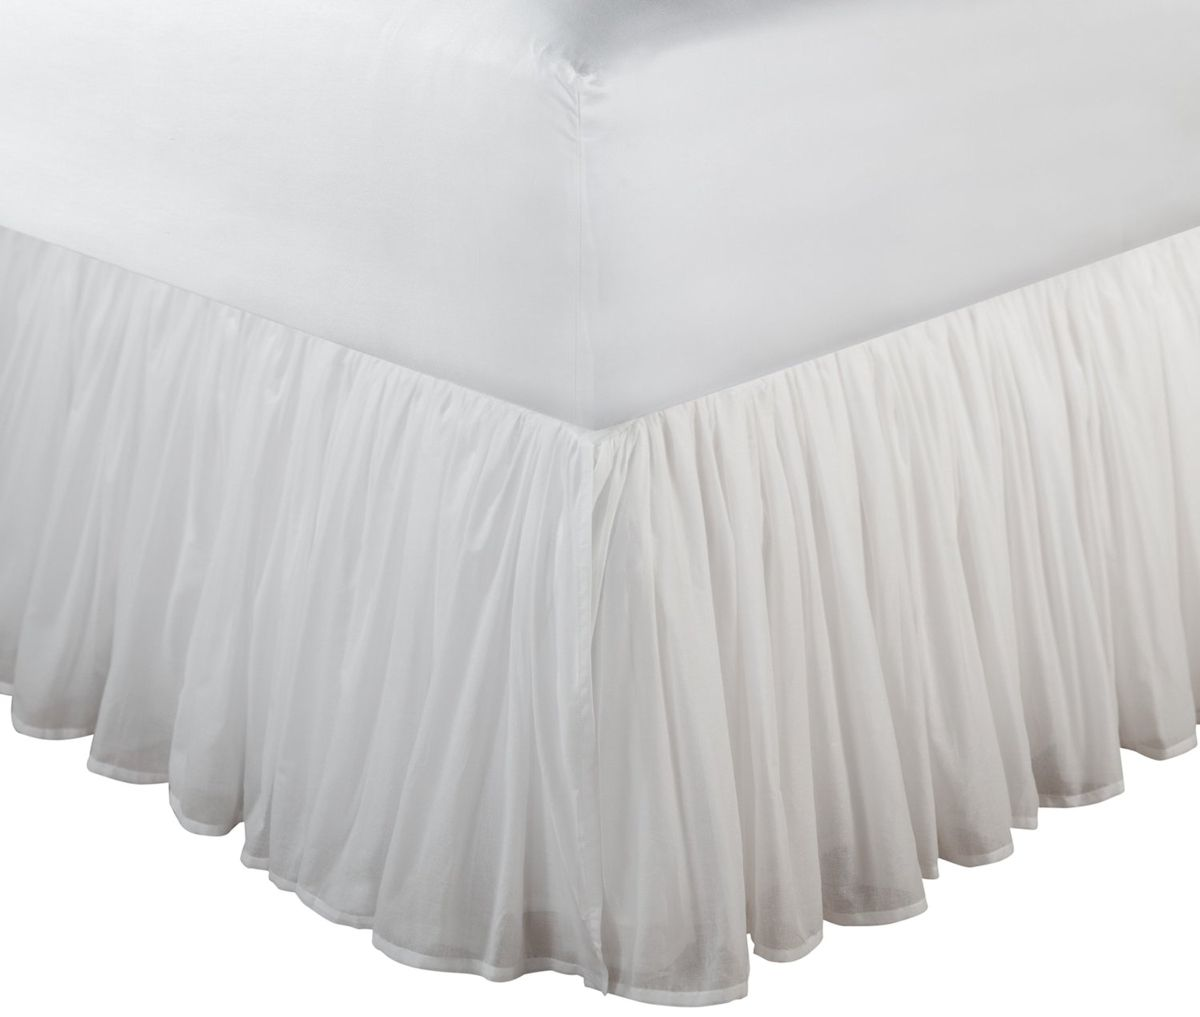 White Sheer Cotton Voile Ruffled Bed Skirt Dust Ruffle 15 Or 18 Drop Twin Full Queen King White Bed Skirt Greenland Home Fashions Bedskirt Ruffled bed skirt queen